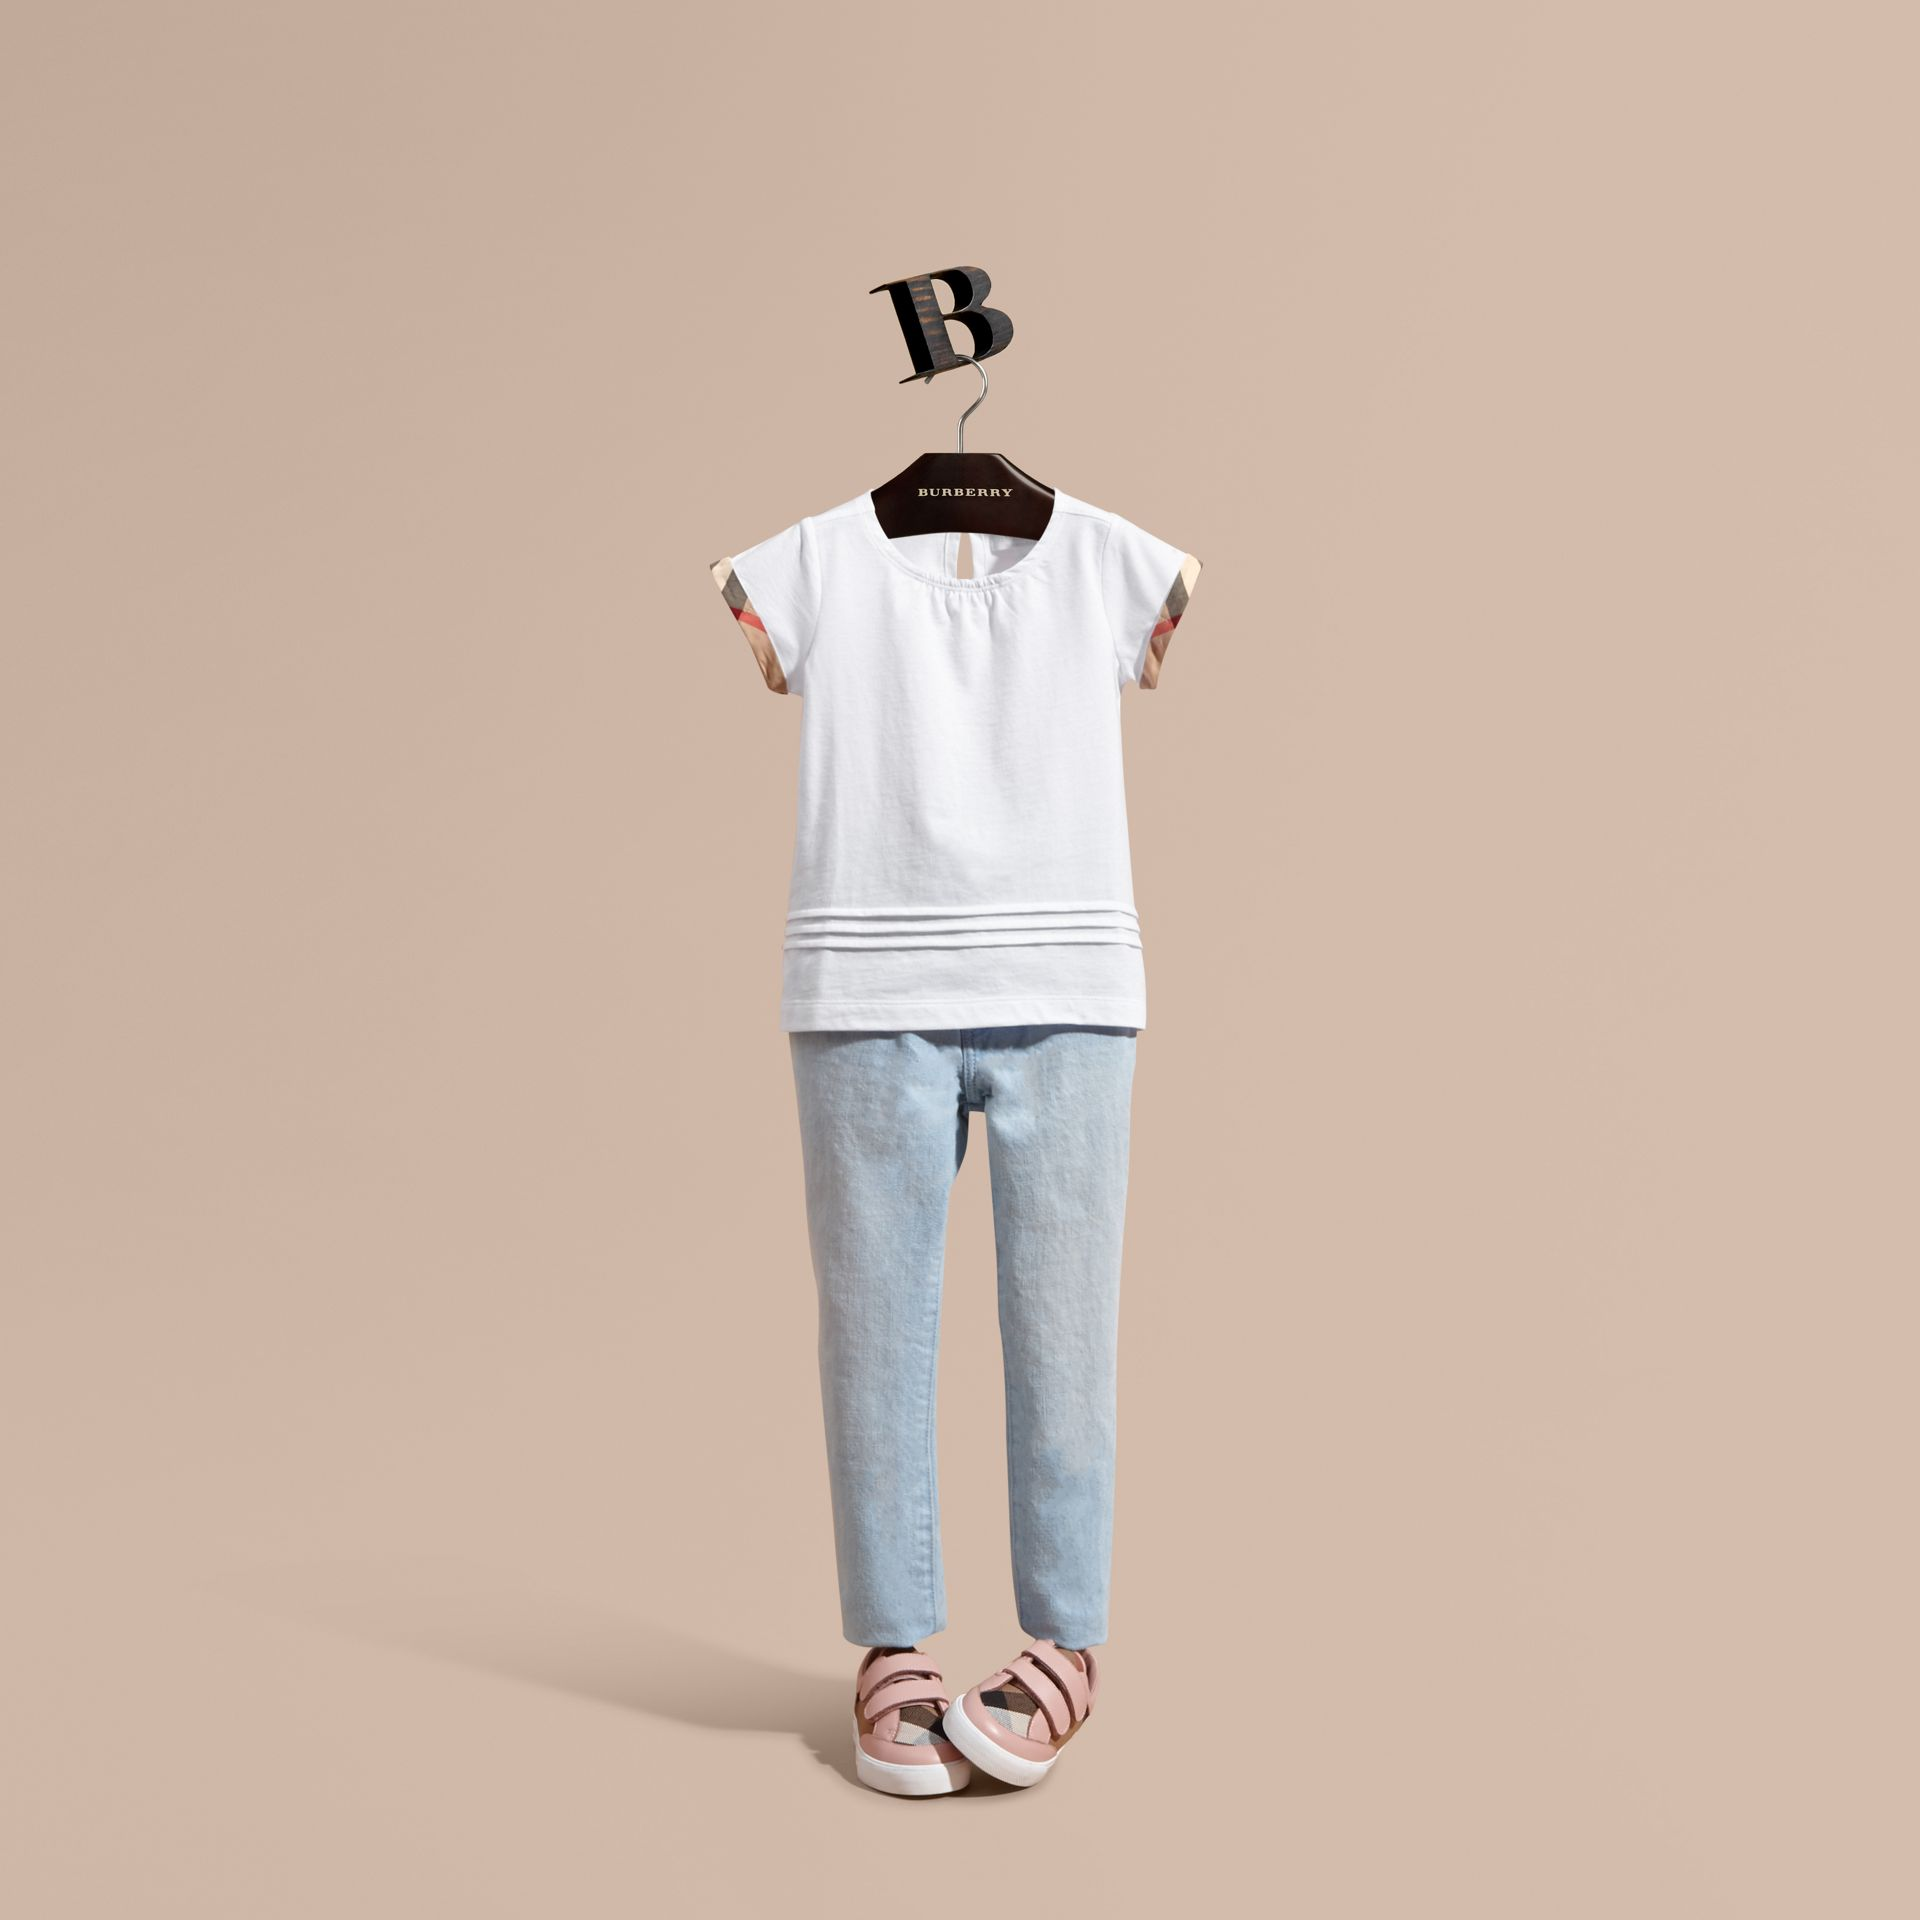 Pleat and Check Detail Cotton T-shirt White - gallery image 1